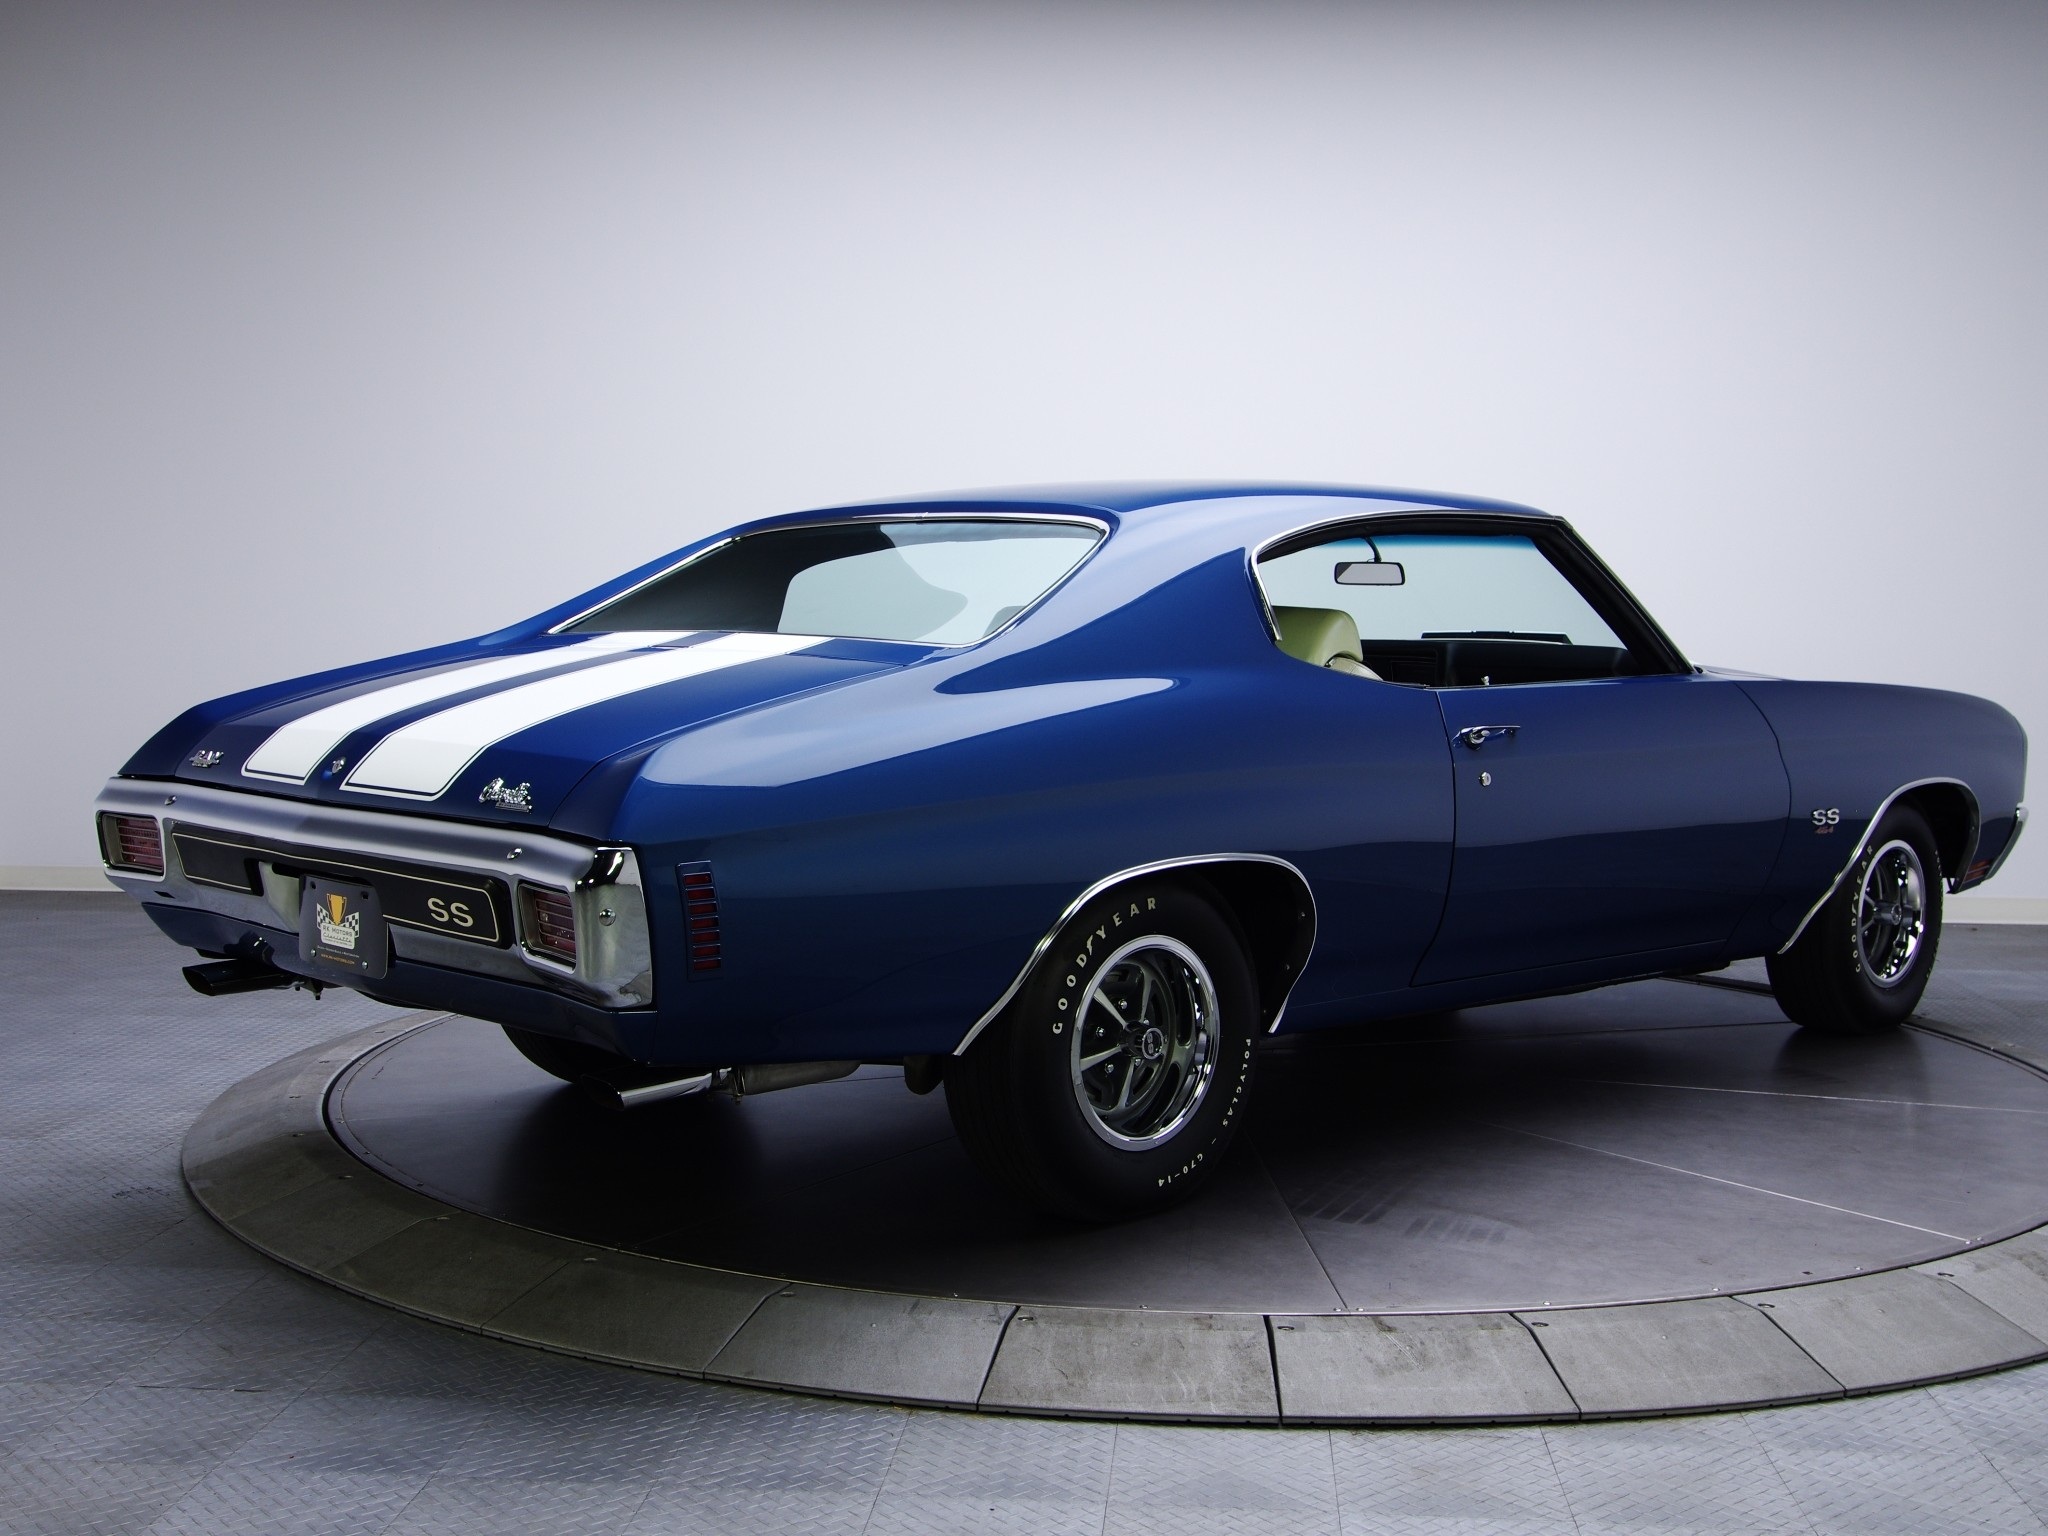 1970 Chevelle SS LS6 black w/ white stripes,bucket seats, 4 spd.gauges    Cars Are My First Love!   Pinterest   Bucket seats, Chevelle SS and Gauges